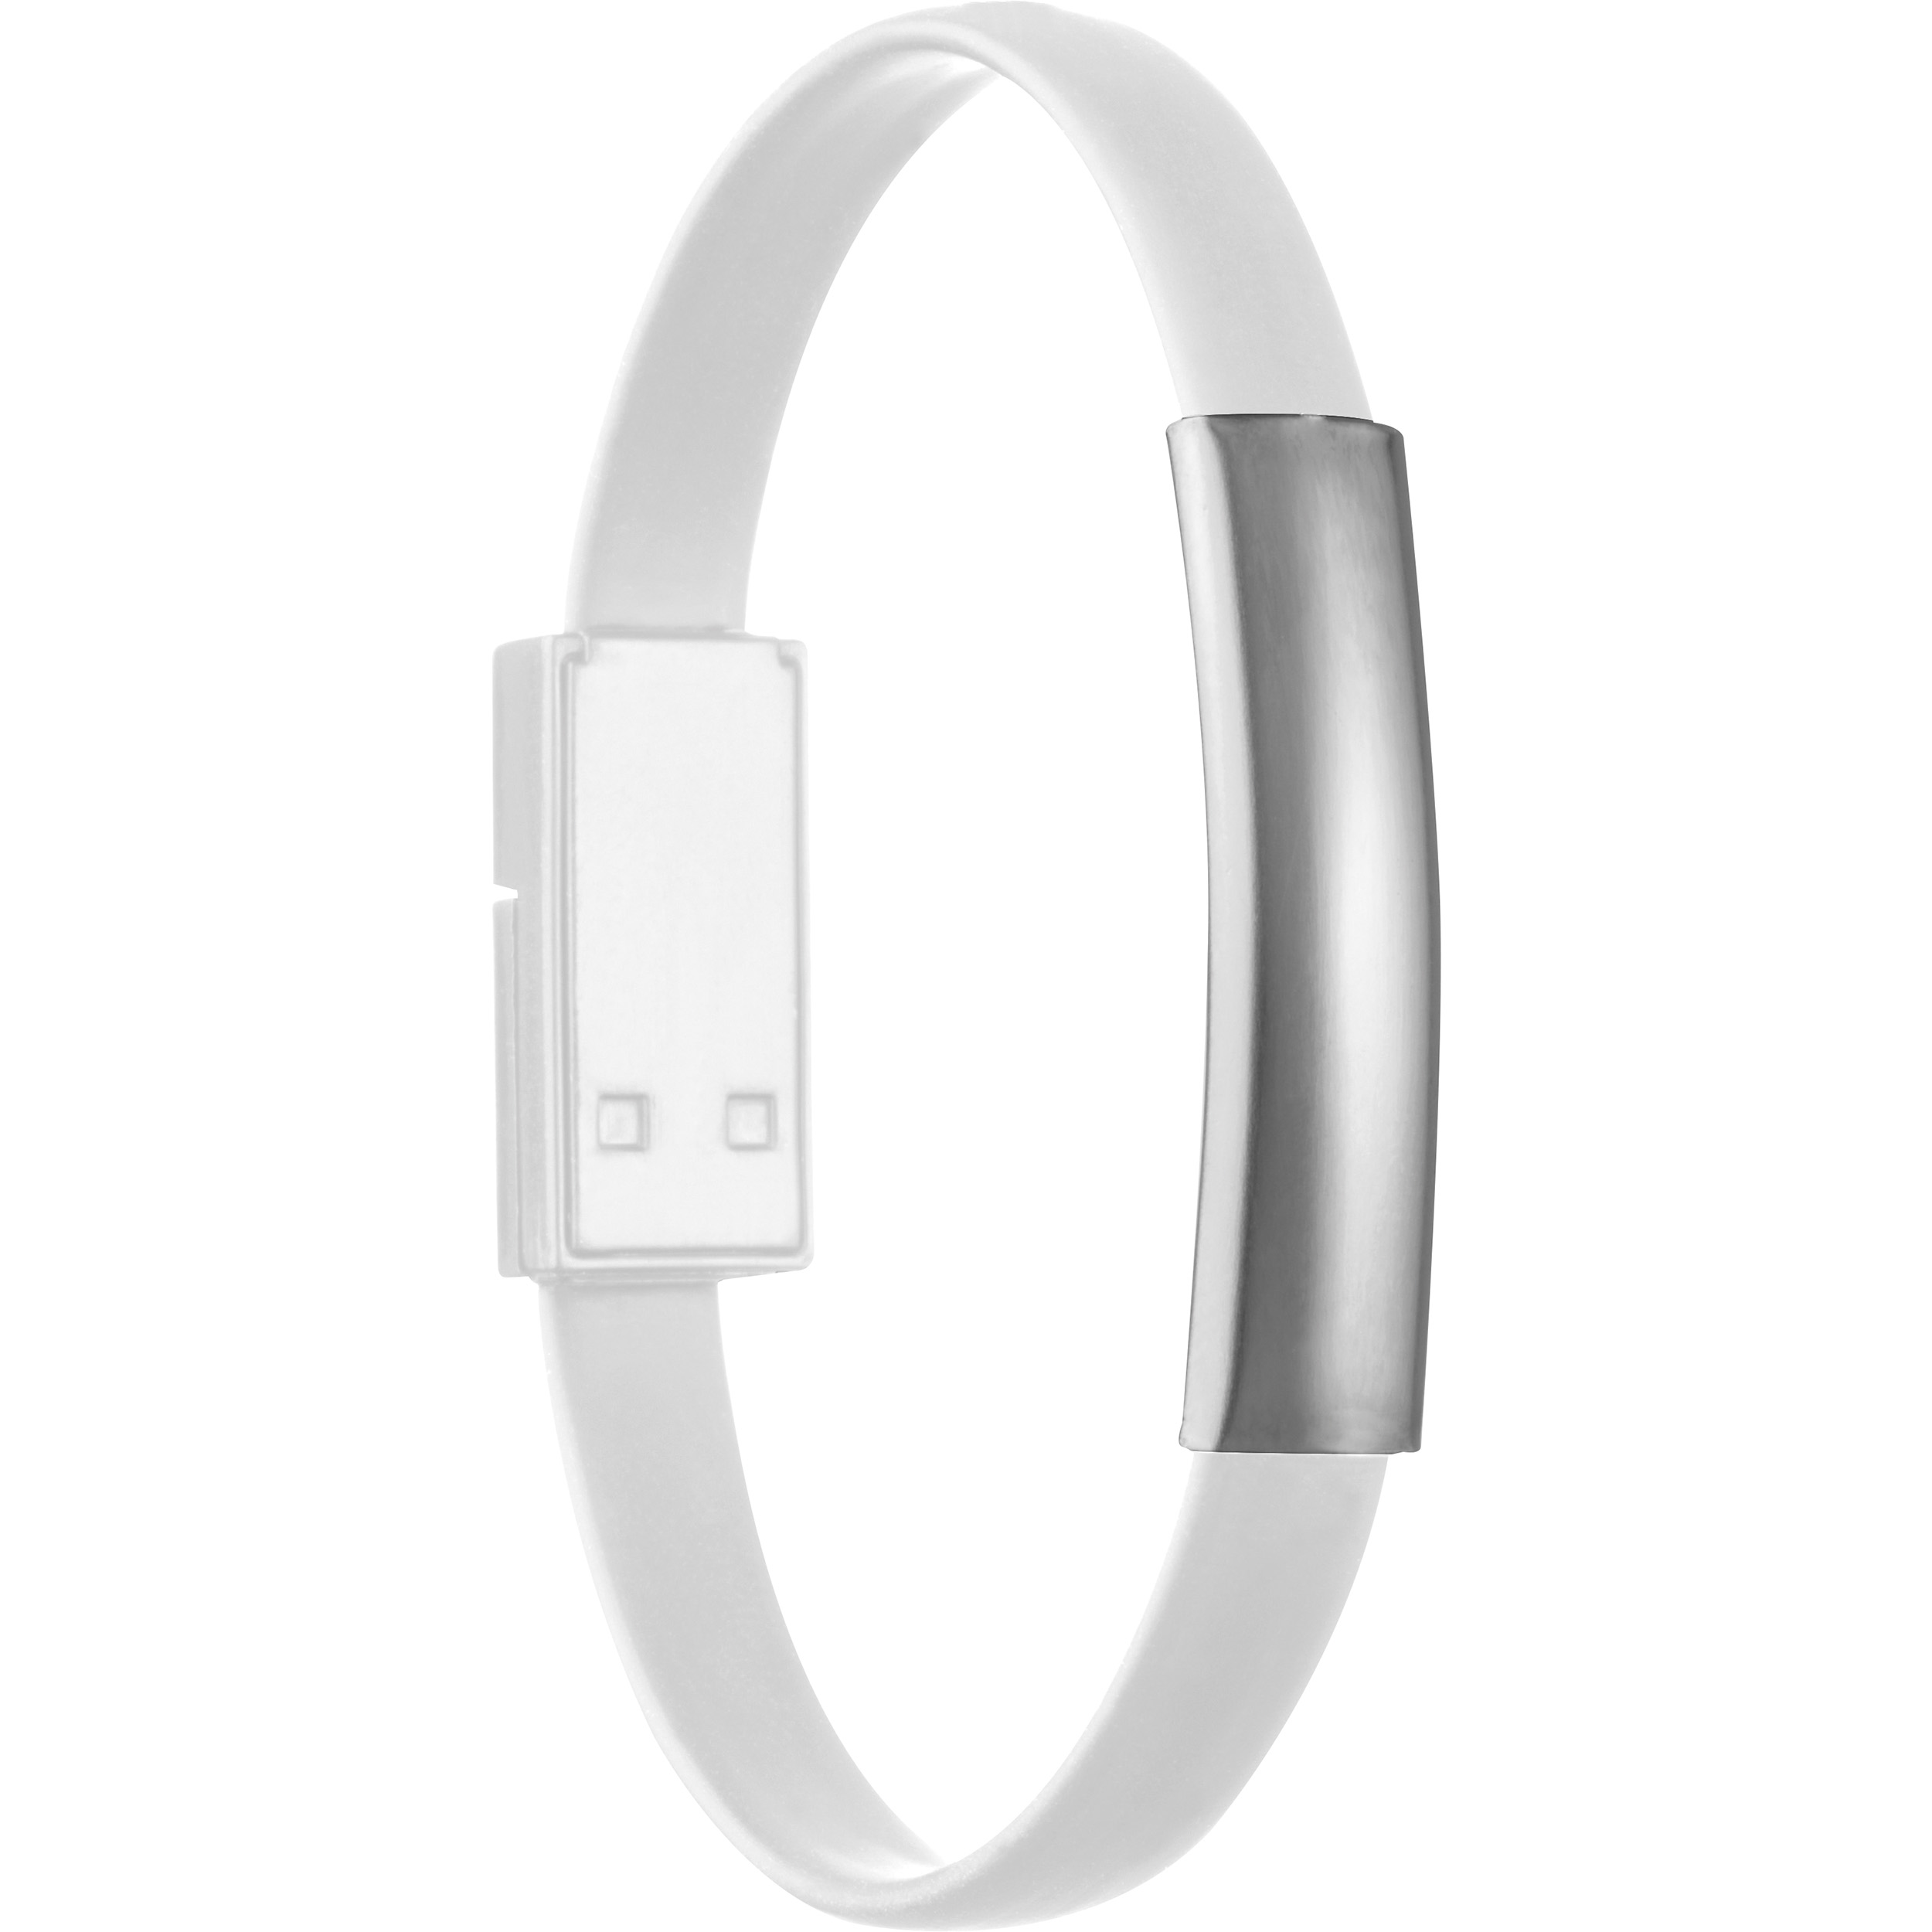 Silicone wristband for Data- or Powertransfer.